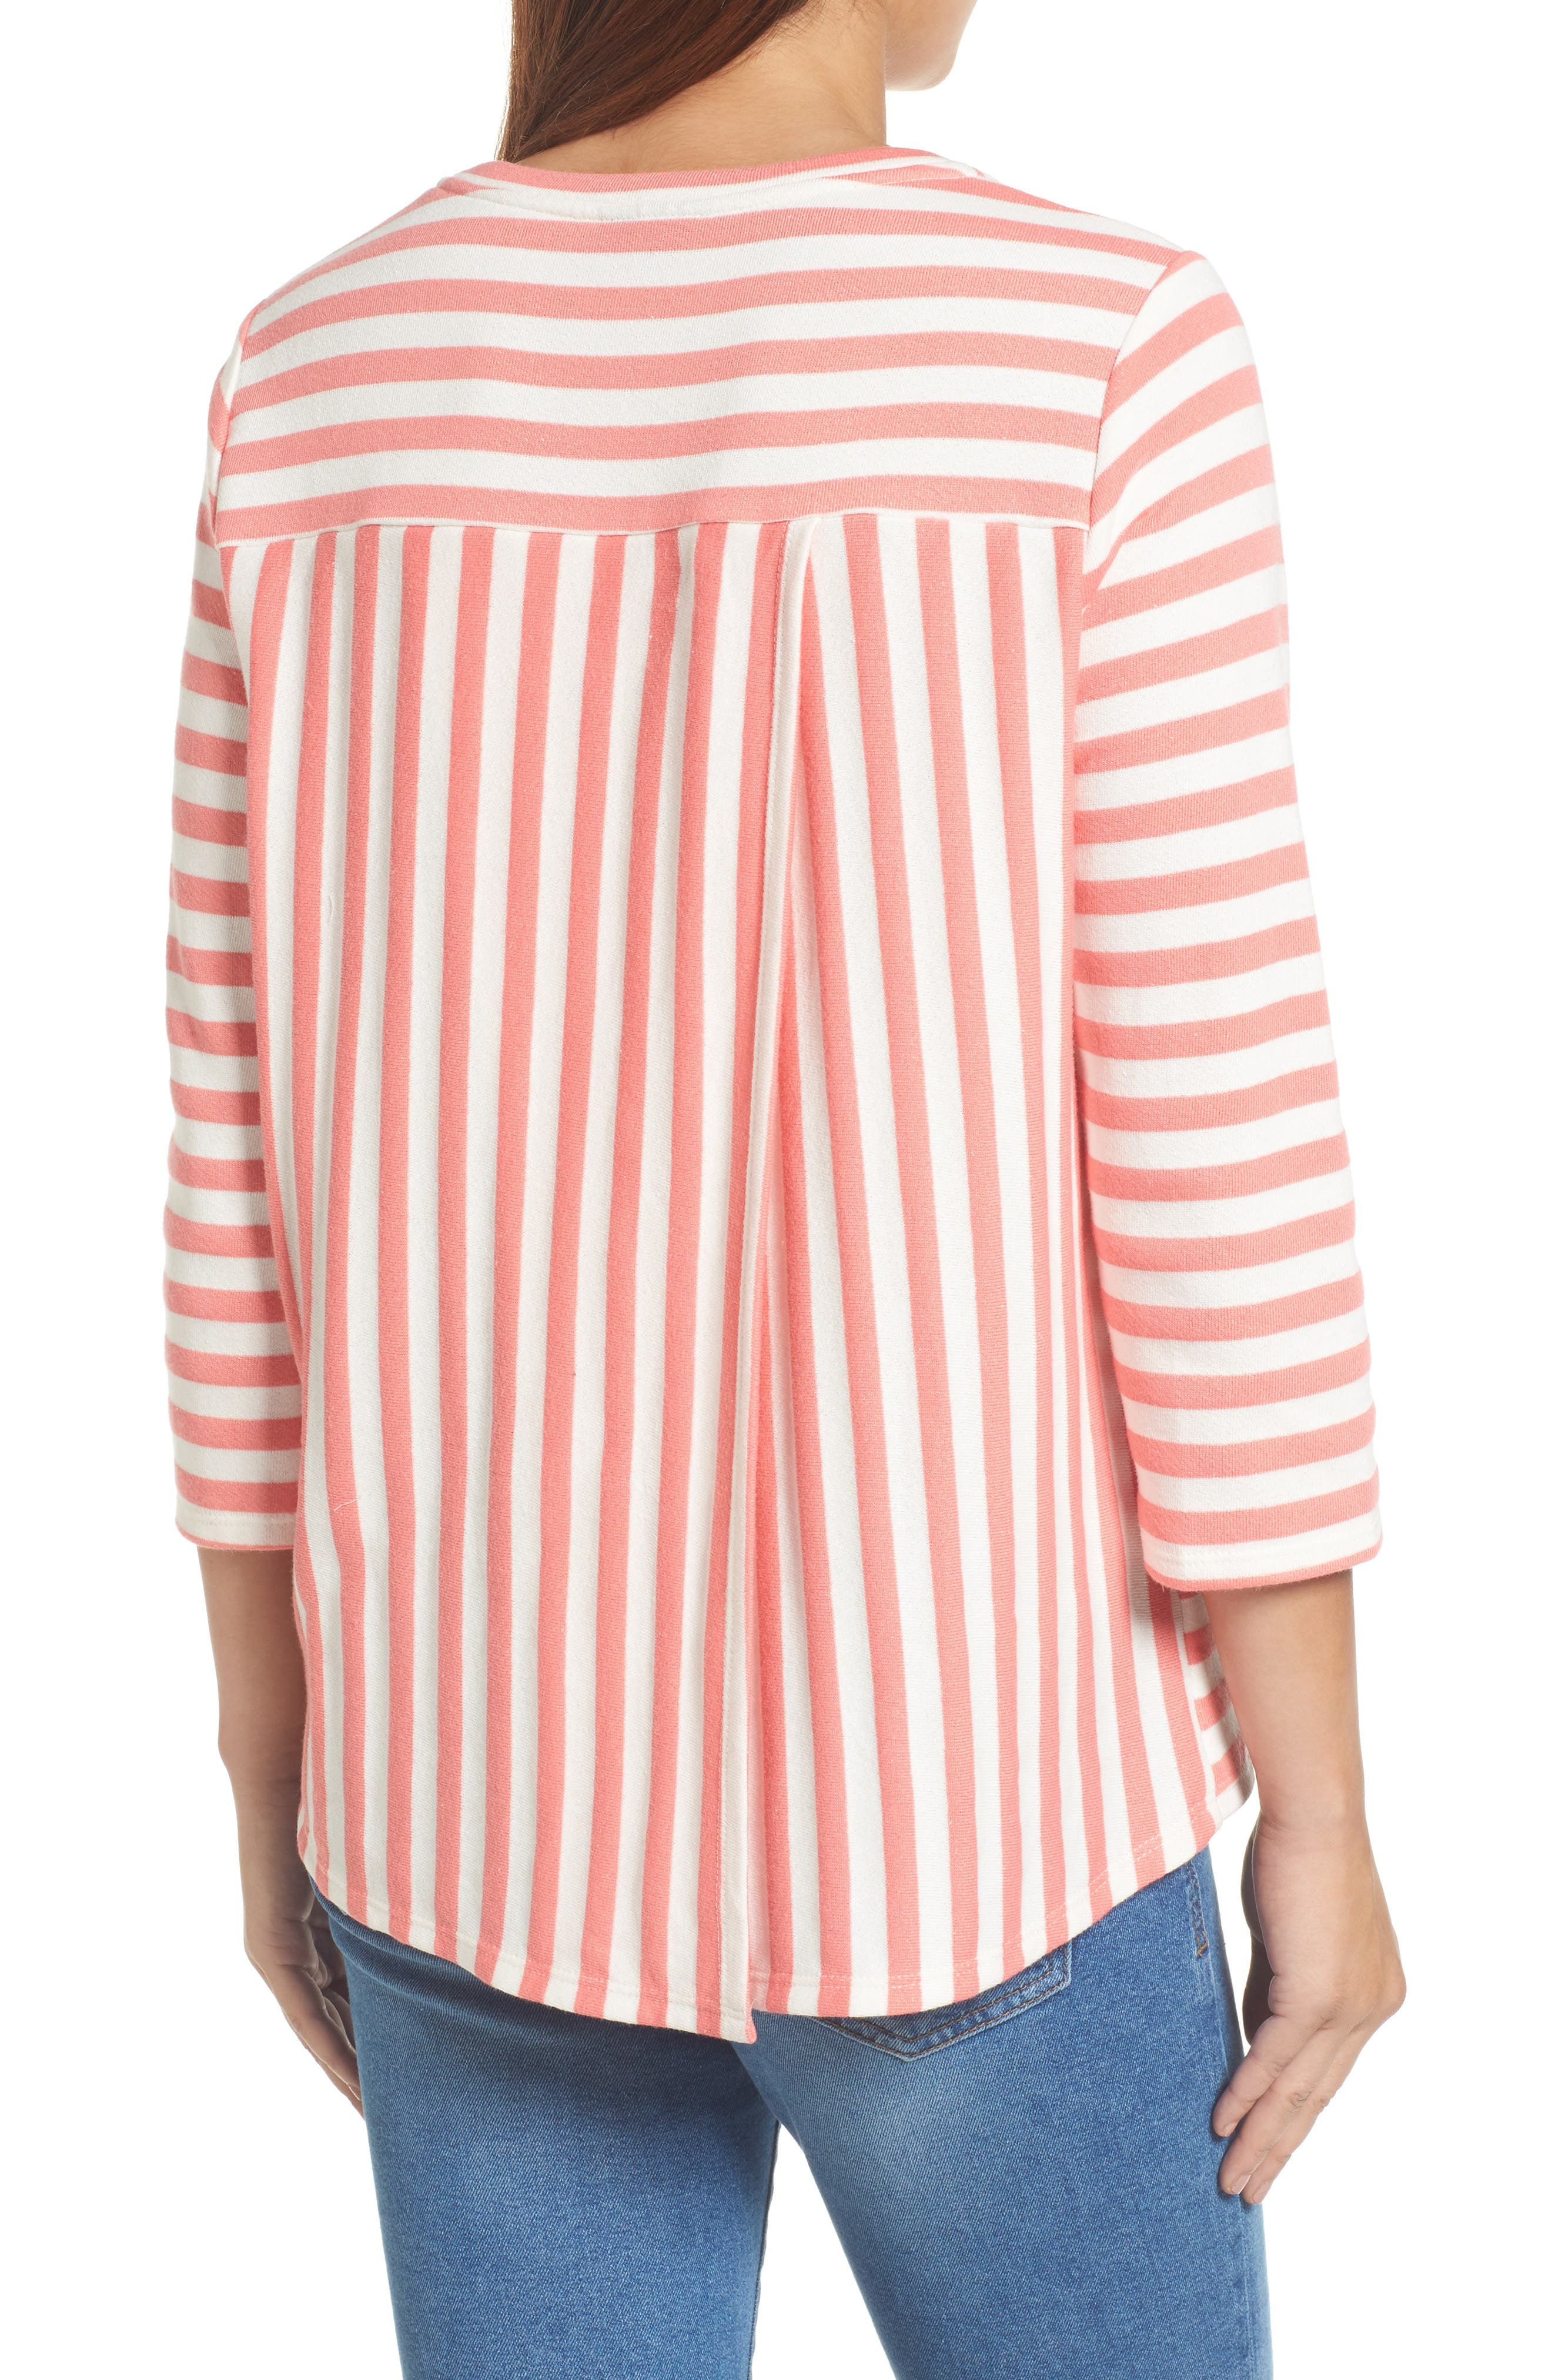 Halogen High/Low Cross Back Sweatshirt,                             Alternate thumbnail 2, color,                             Coral Sugar- White Stripe